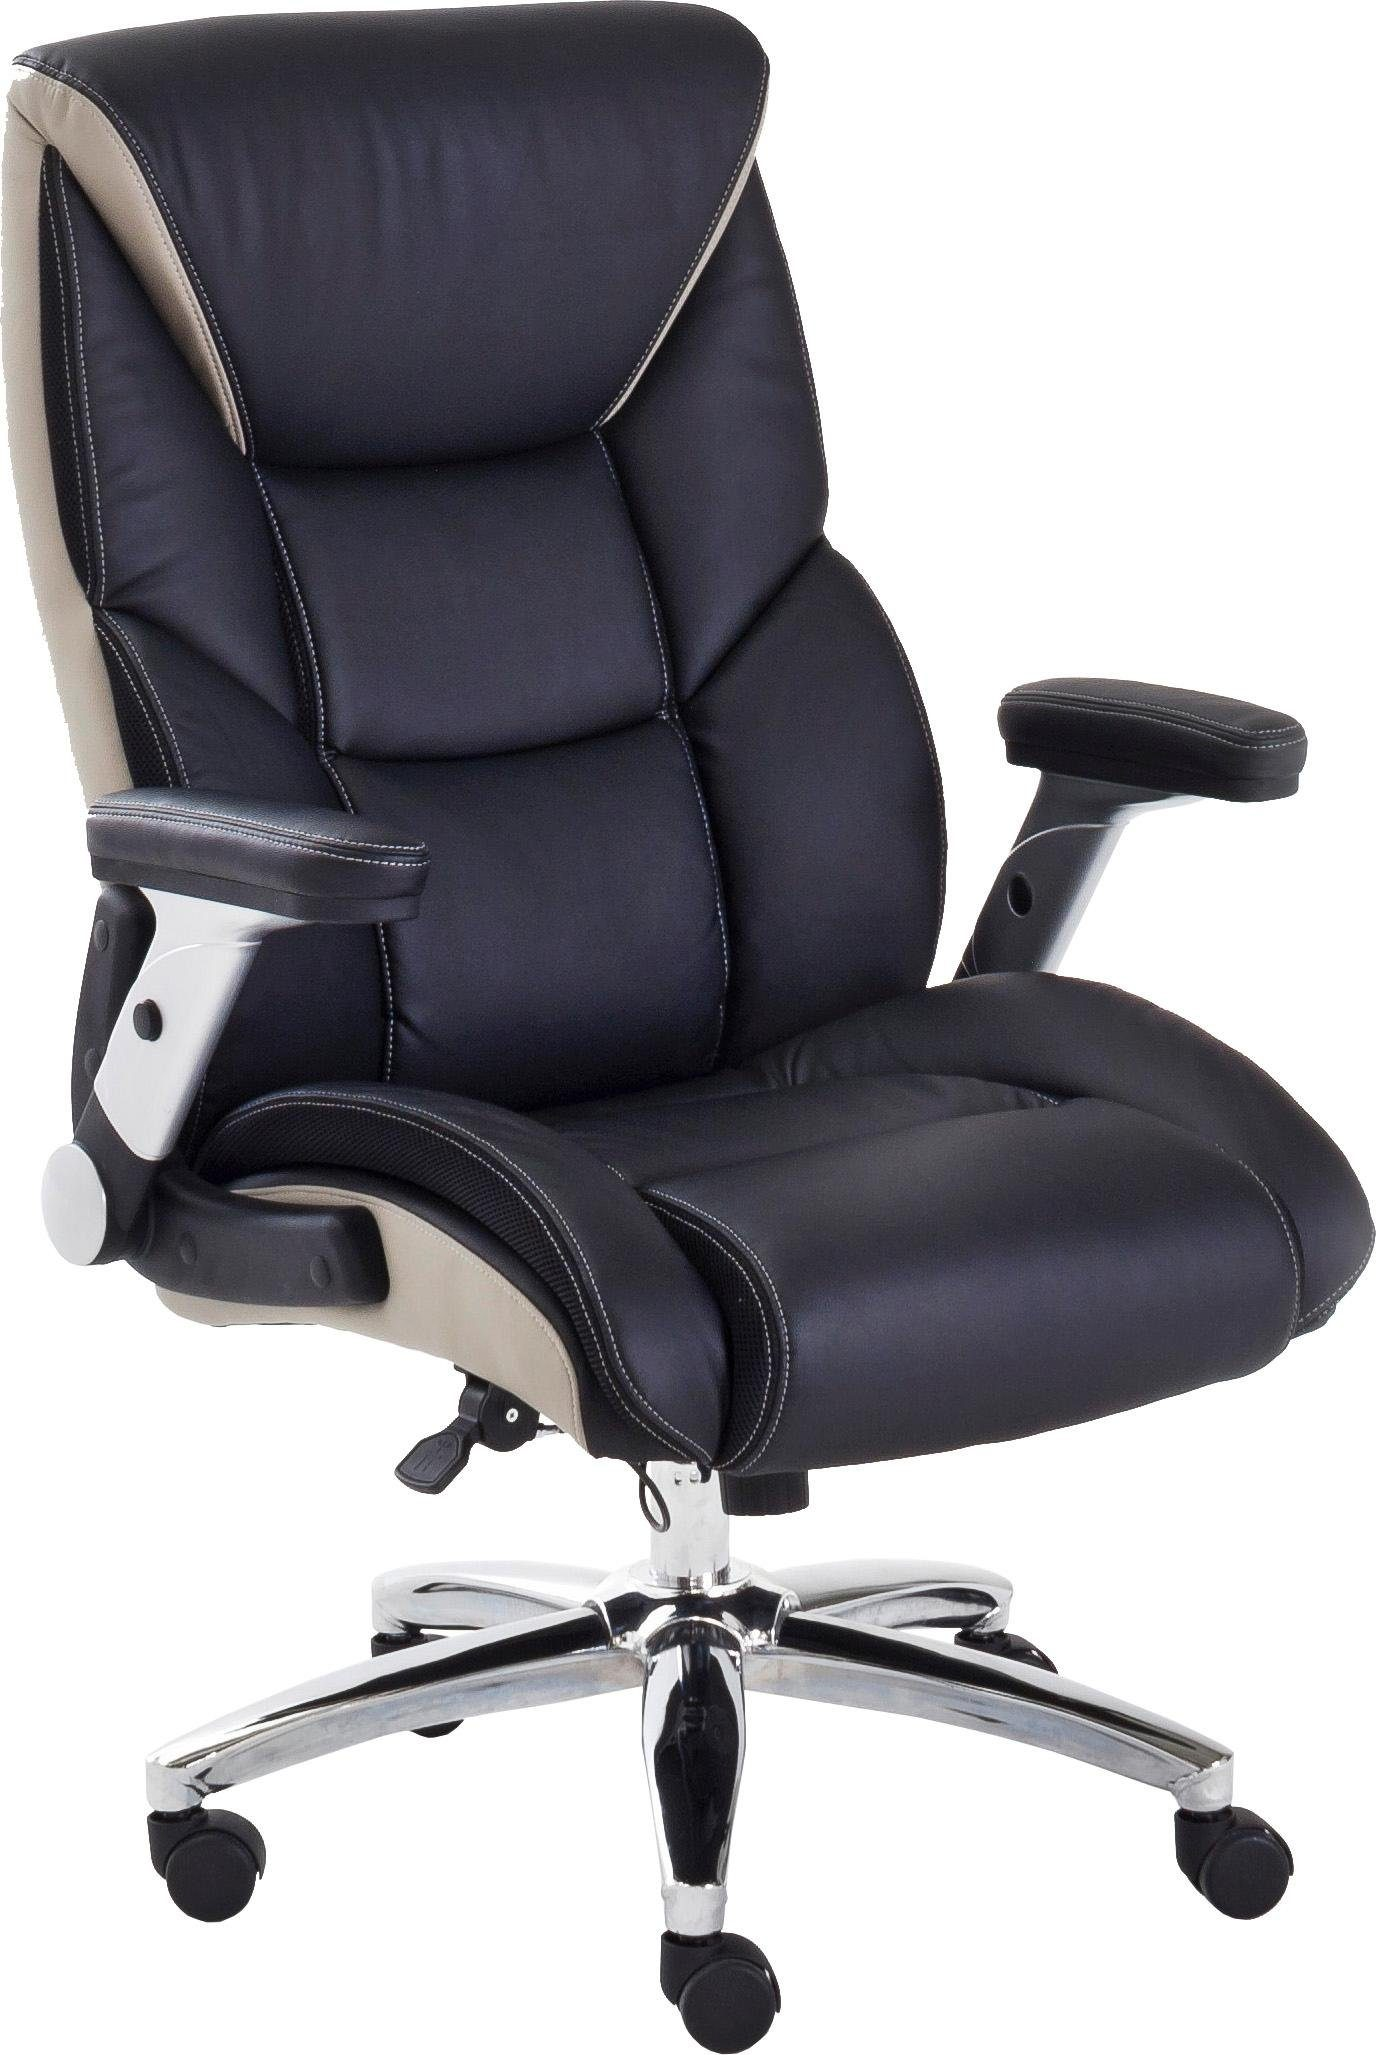 Chefsessel »REAL COMFORT 2«